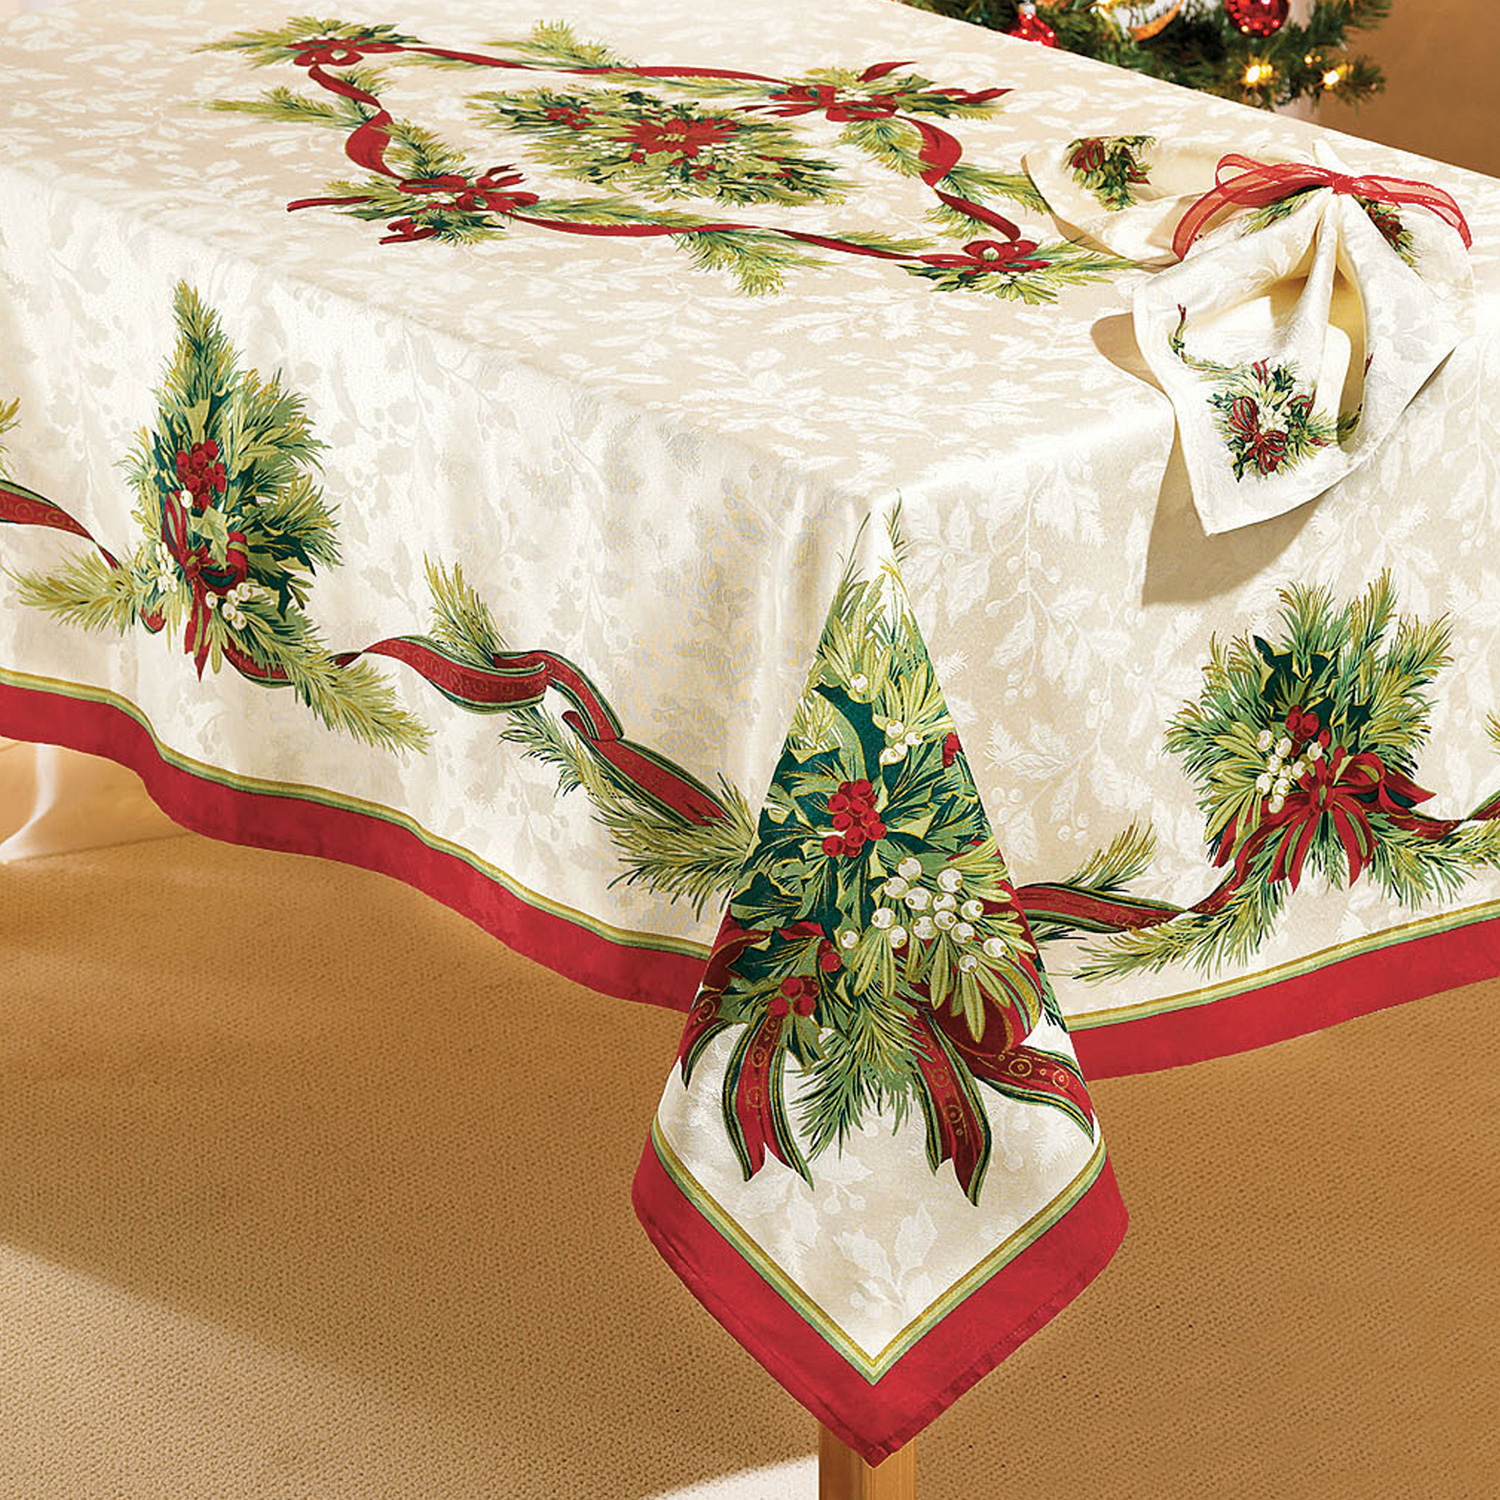 The Christmas Ribbons Tablecloth Collection,